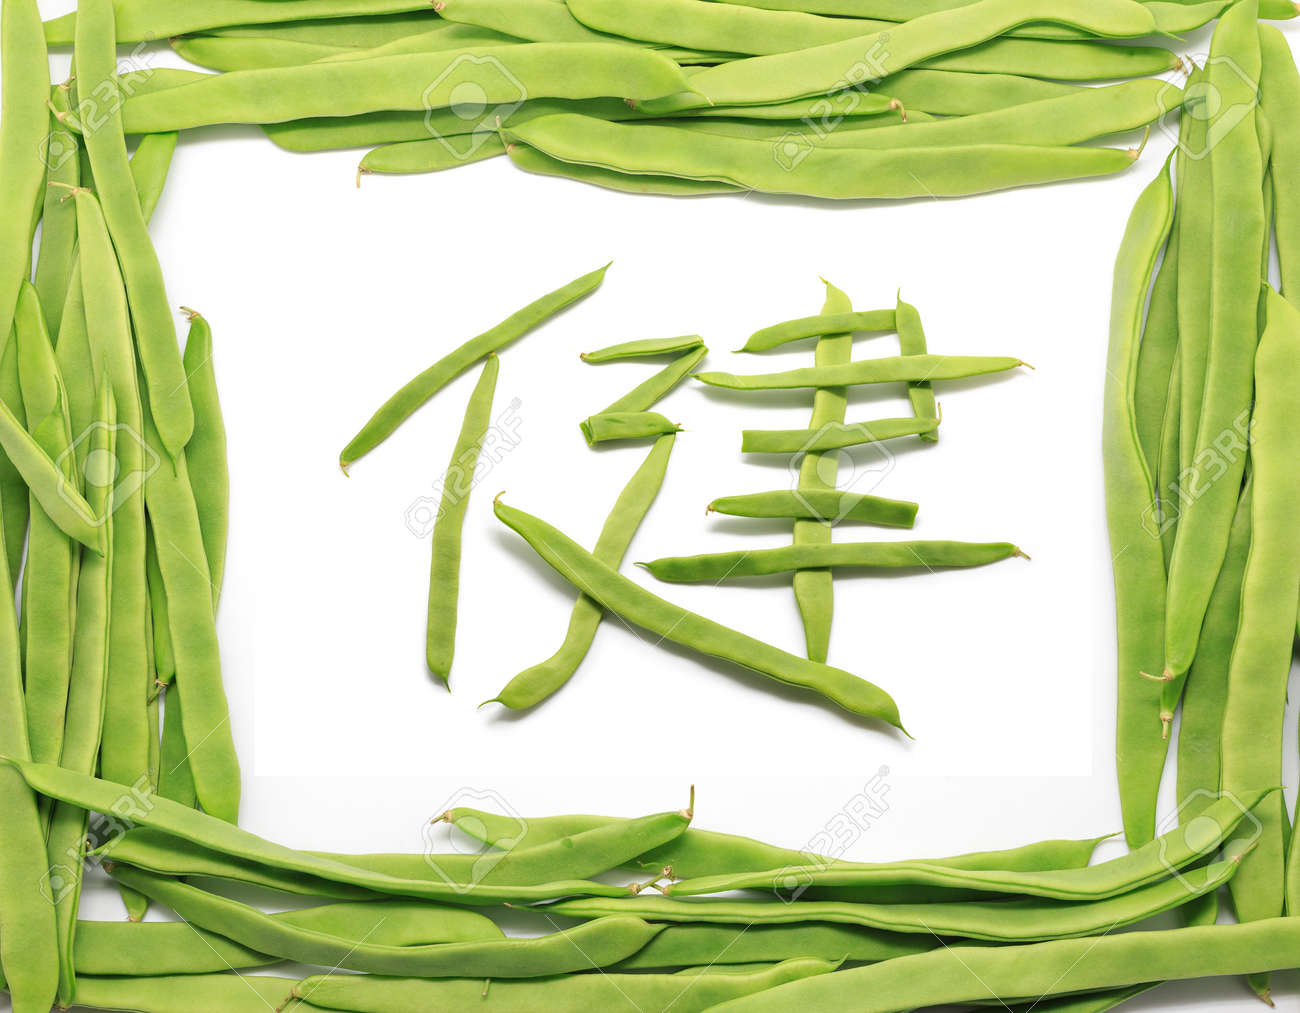 Frame of green beans with beans forming chinese health symbol frame of green beans with beans forming chinese health symbol inside stock photo 56732115 biocorpaavc Gallery